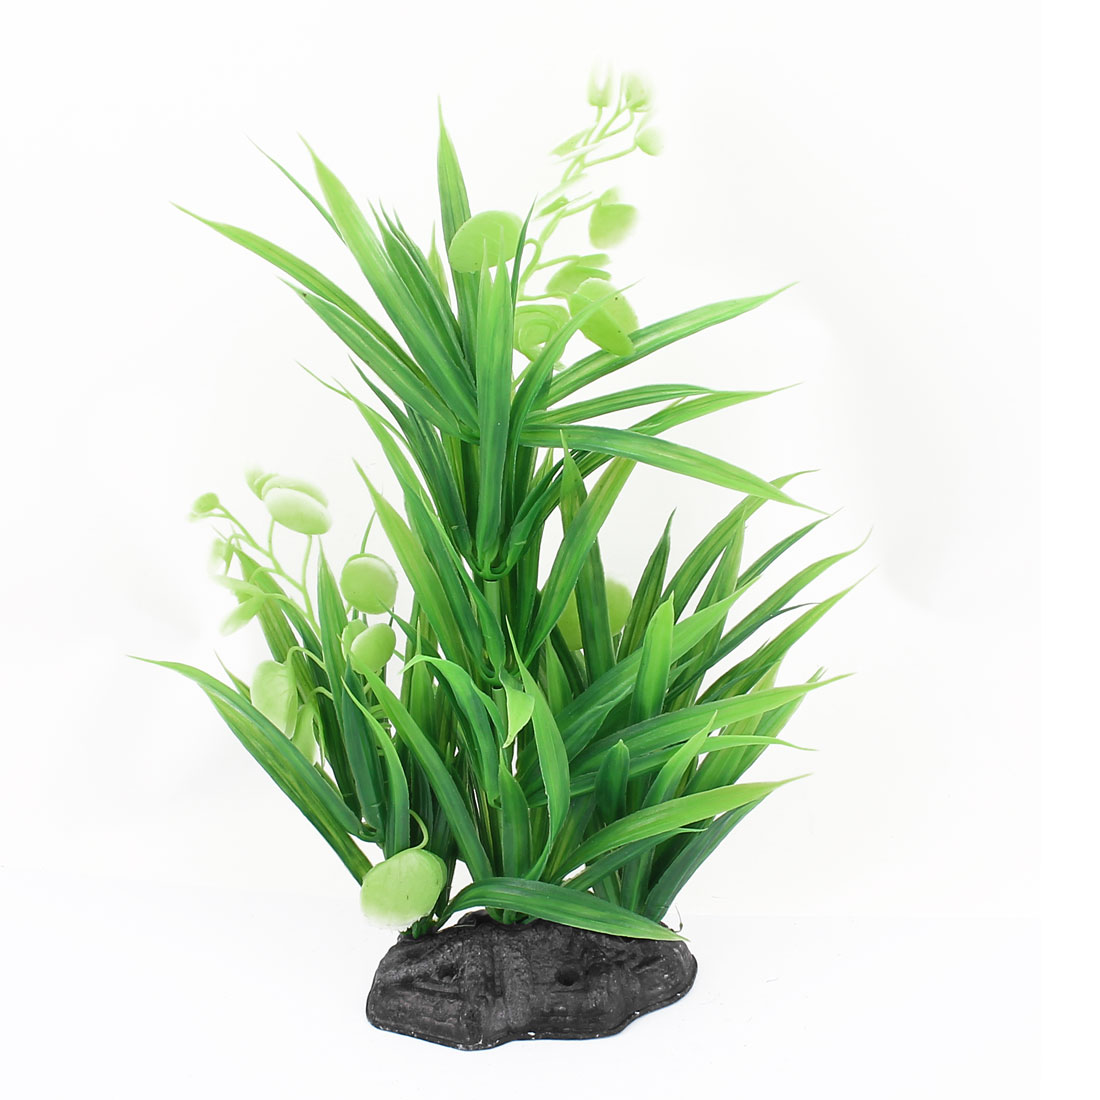 Plastic Simulation Aquascaping Underwater Grass Decor Aquarium Plant